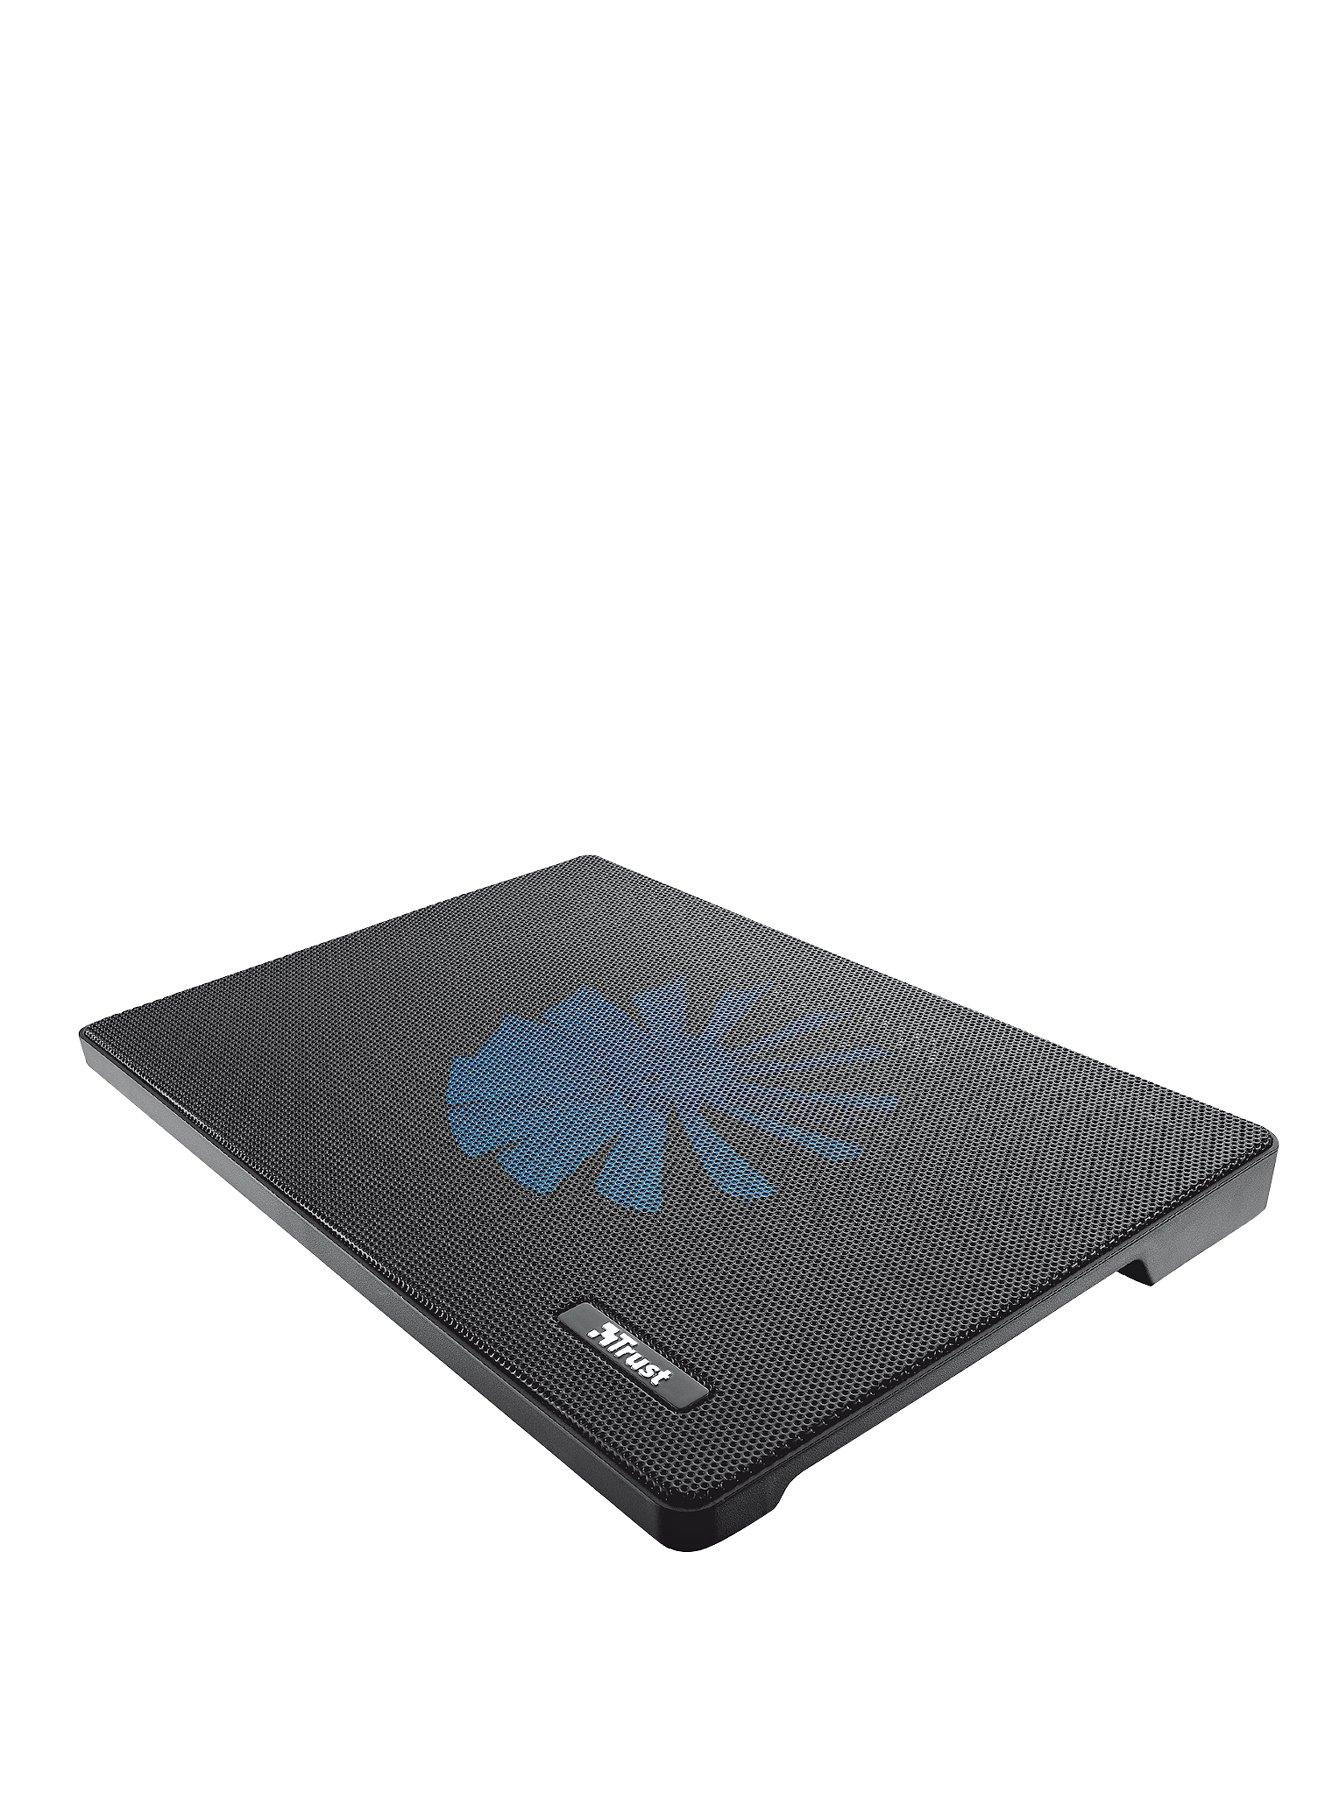 Frio Laptop Cooling Stand with Fan